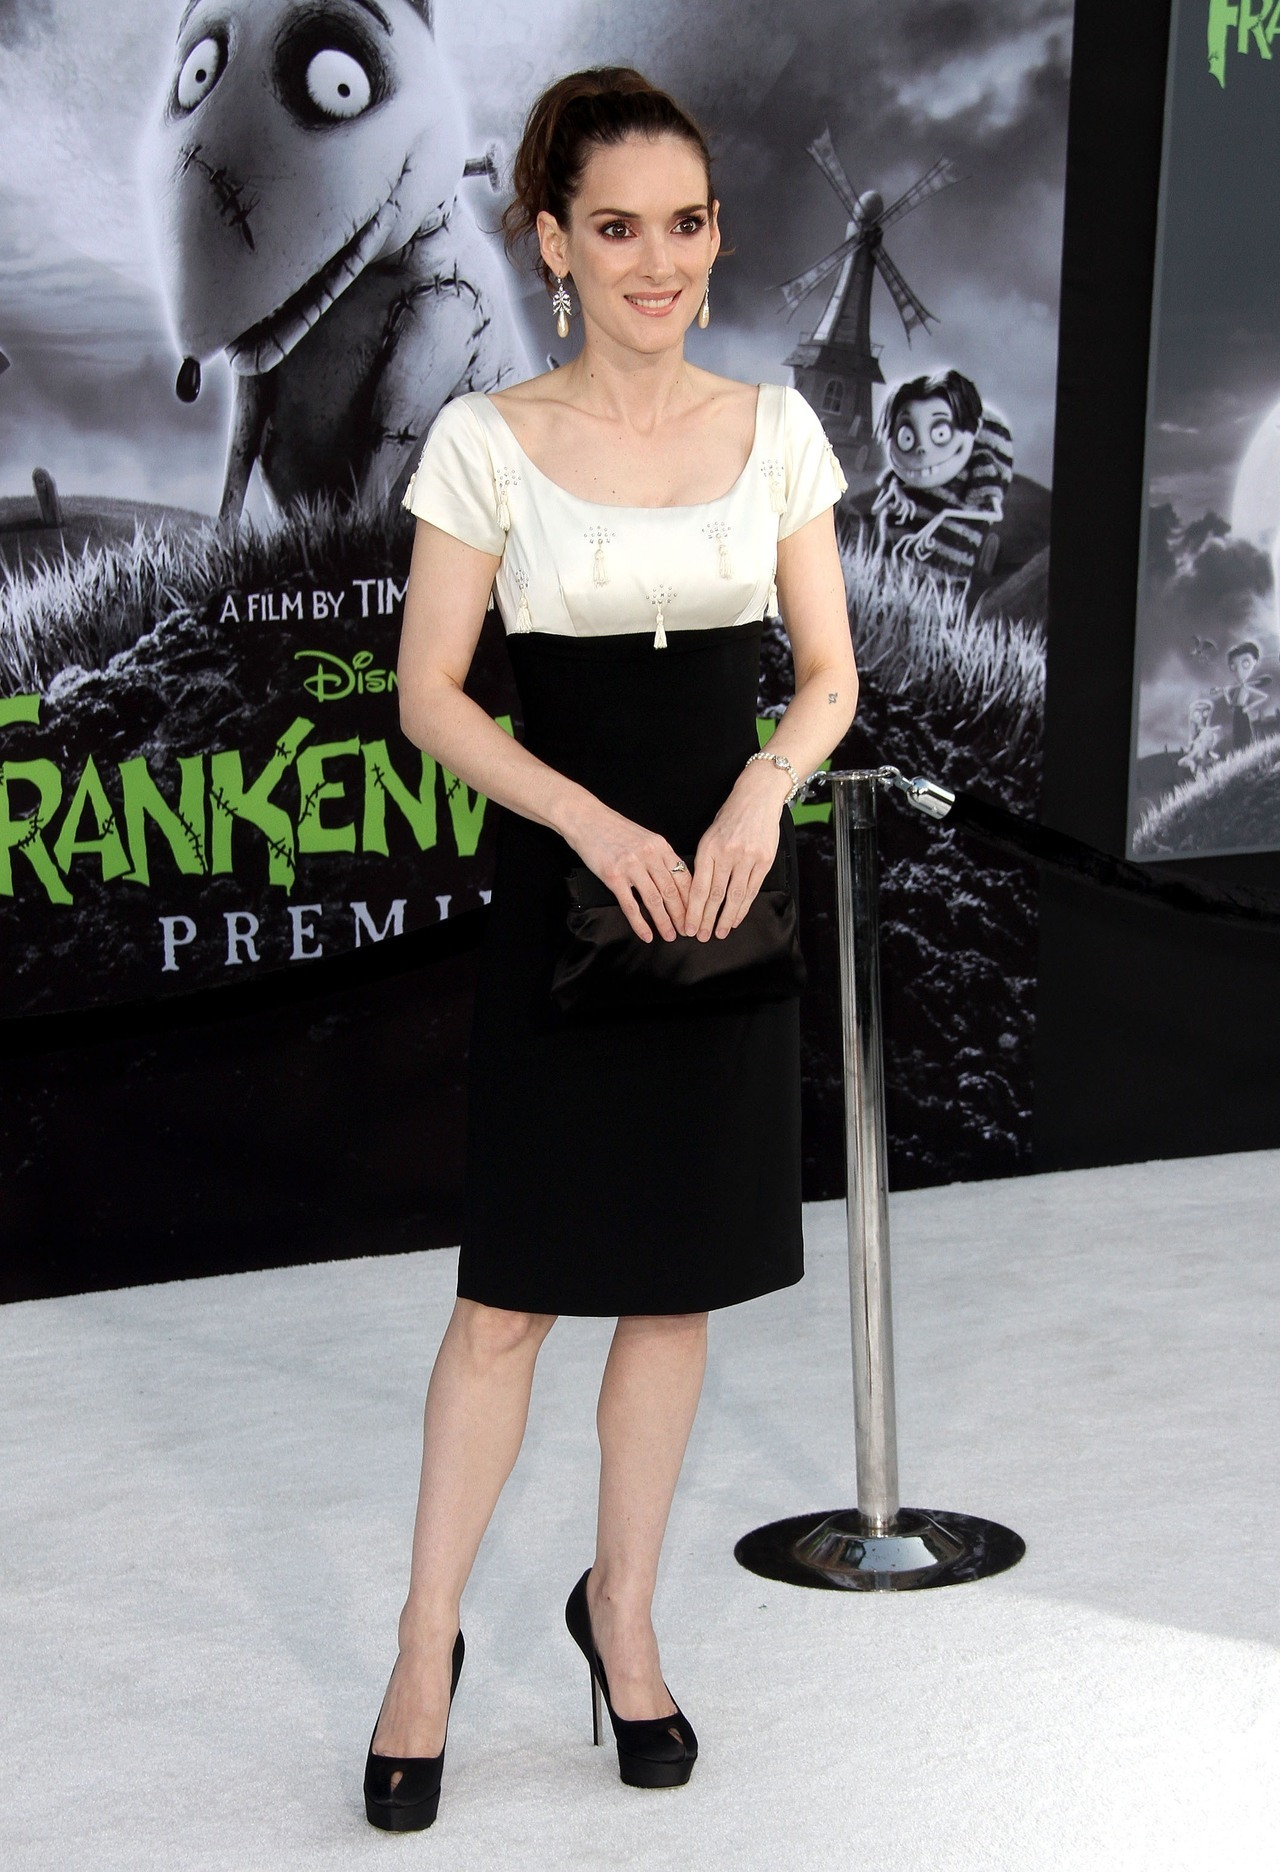 suicideblonde:  Winona Ryder at the Hollywood premiere of Frankenweenie, September 24th I recognized the watch she's wearing here as the same one she's wearing in the beautiful Herb Ritts photoshoot of her and Johnny Depp from 1991.    IS THIS A SIGN THAT THEY'RE BACK TOGETHER?!  OH PLEASE, 90'S GODS, GRANT ME THIS WISH!